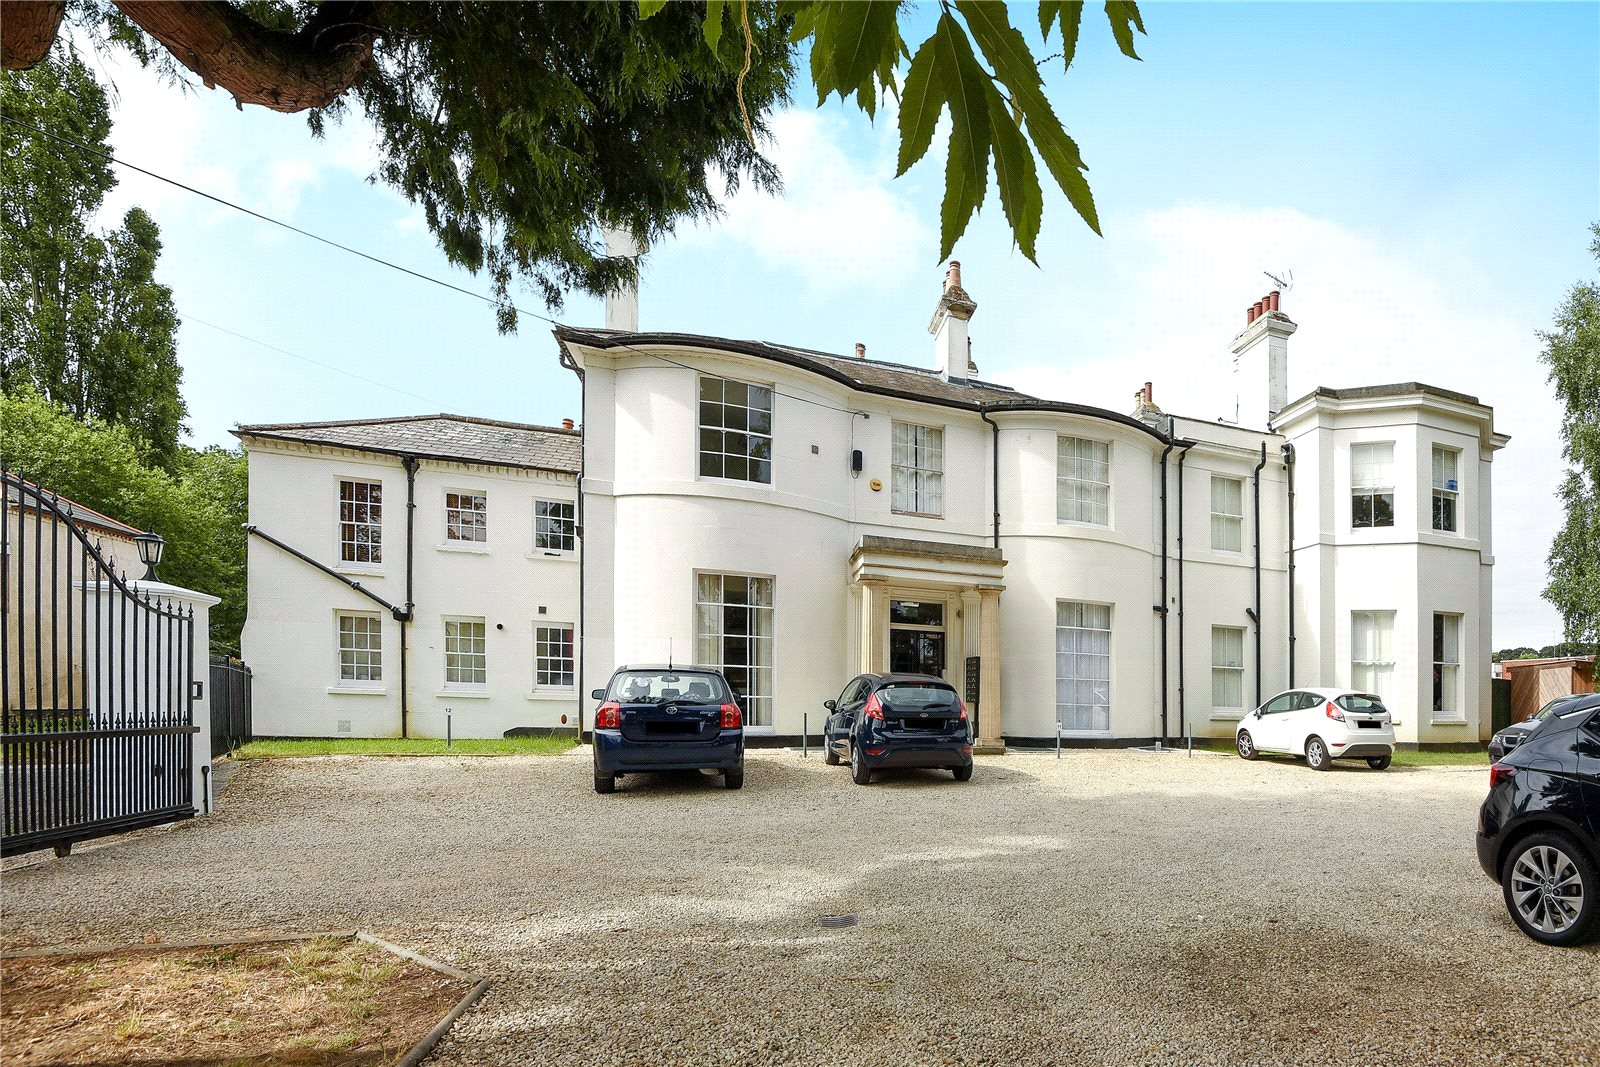 2 Bedrooms Apartment Flat for sale in St. Andrews House, 28A Wilton Road, Reading, Berkshire, RG30